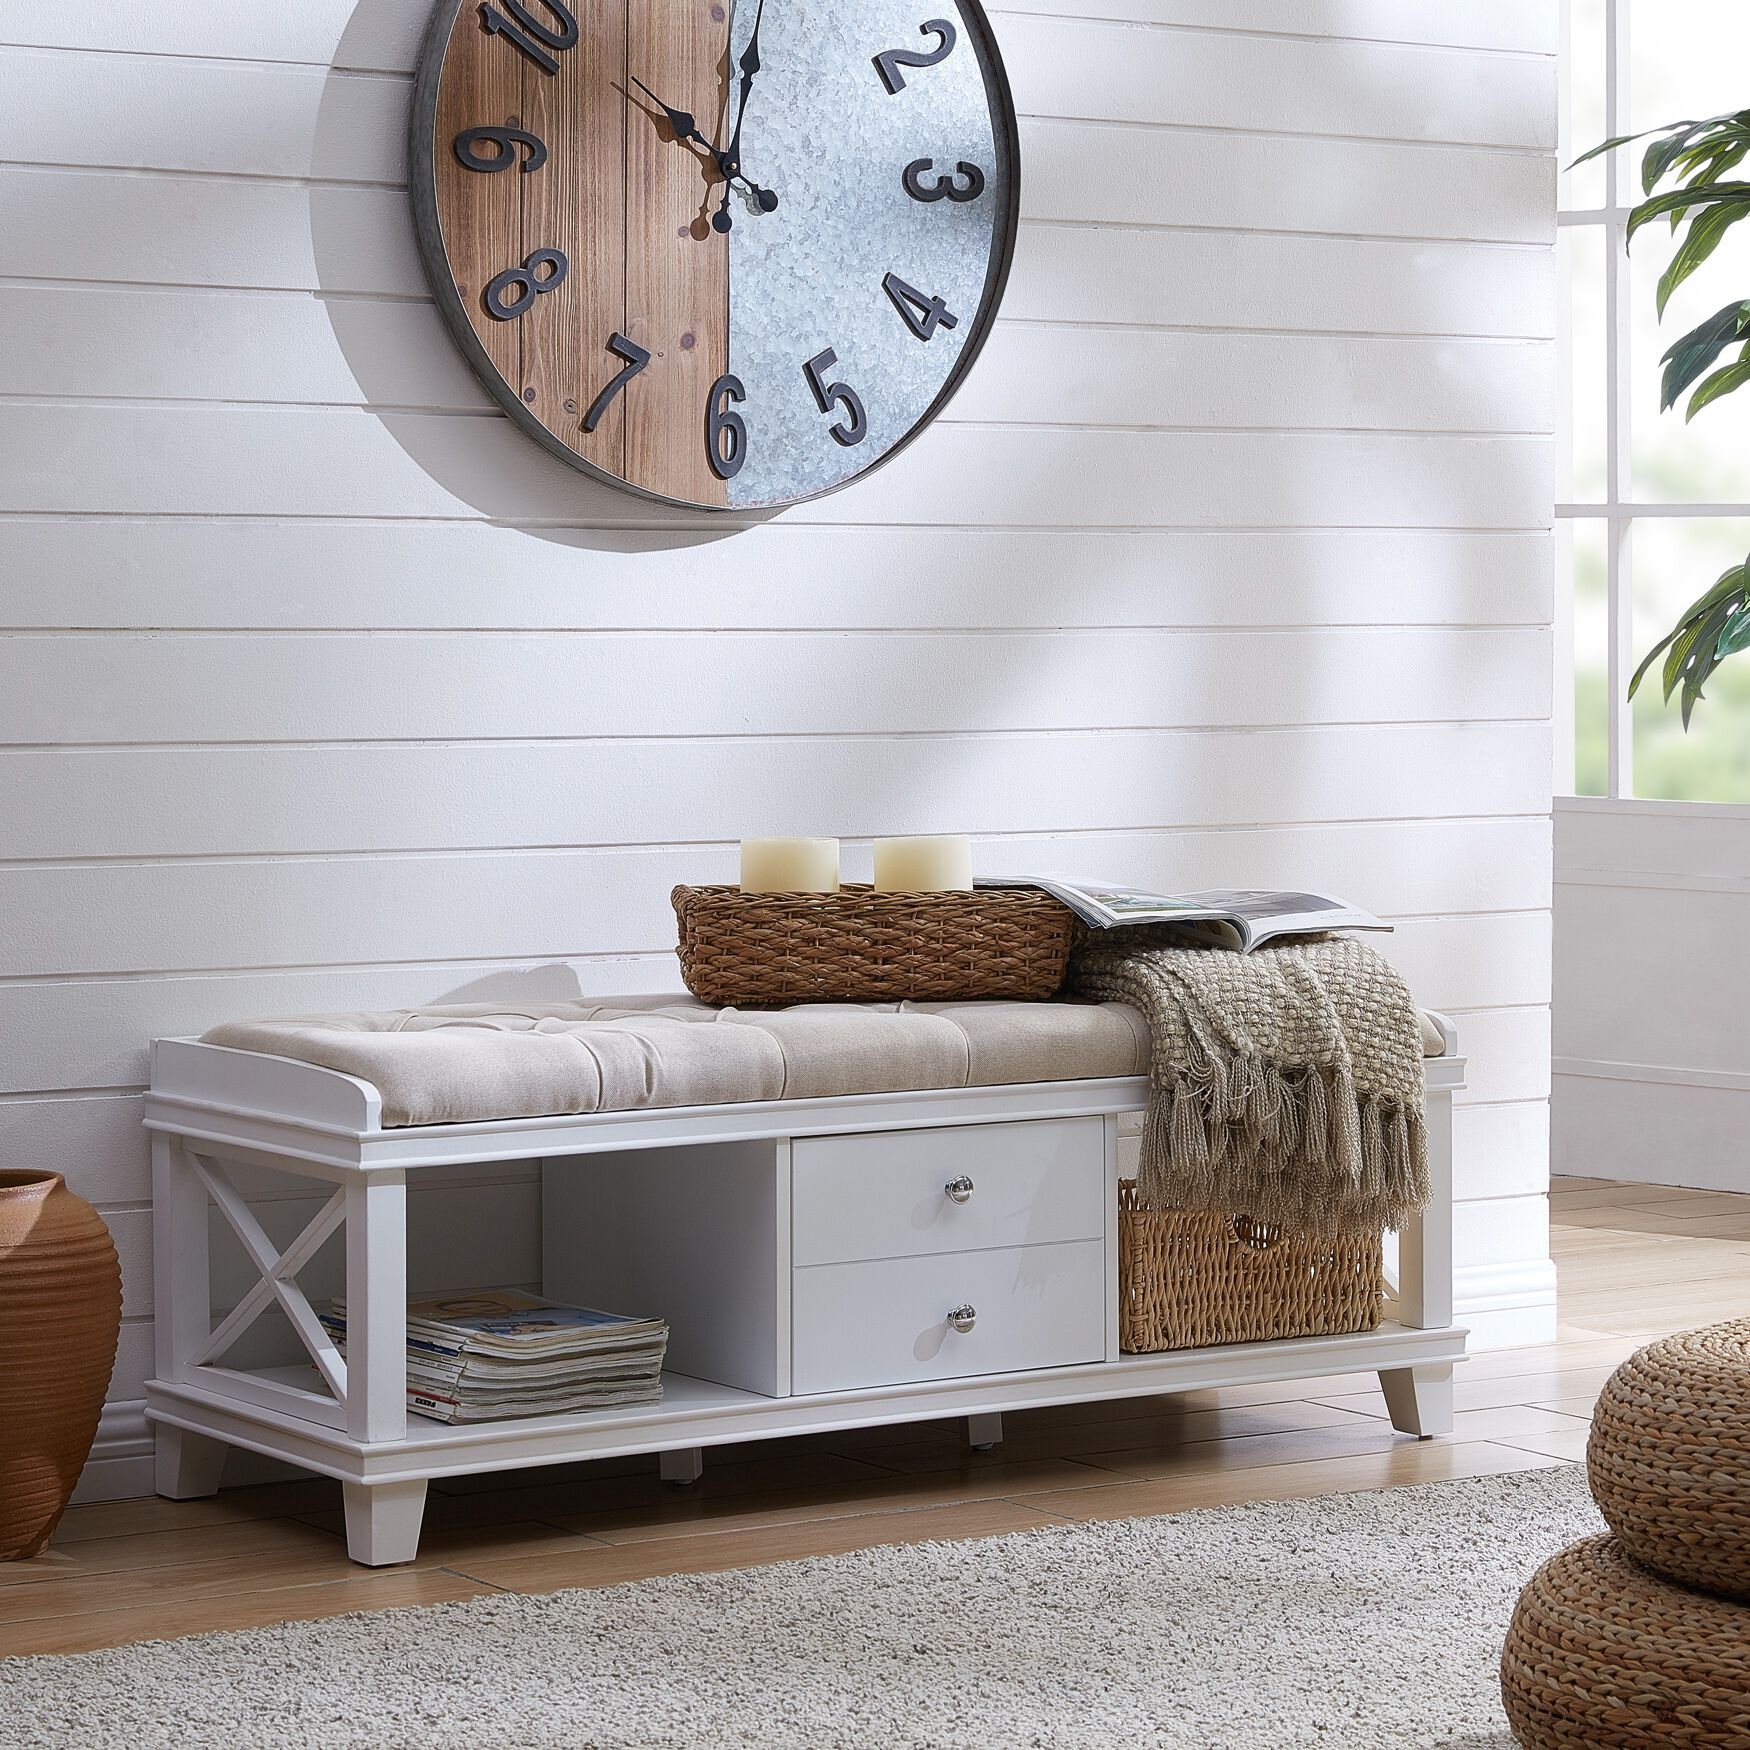 Wyndcliff White Upholstered Storage Bench Brylane Home